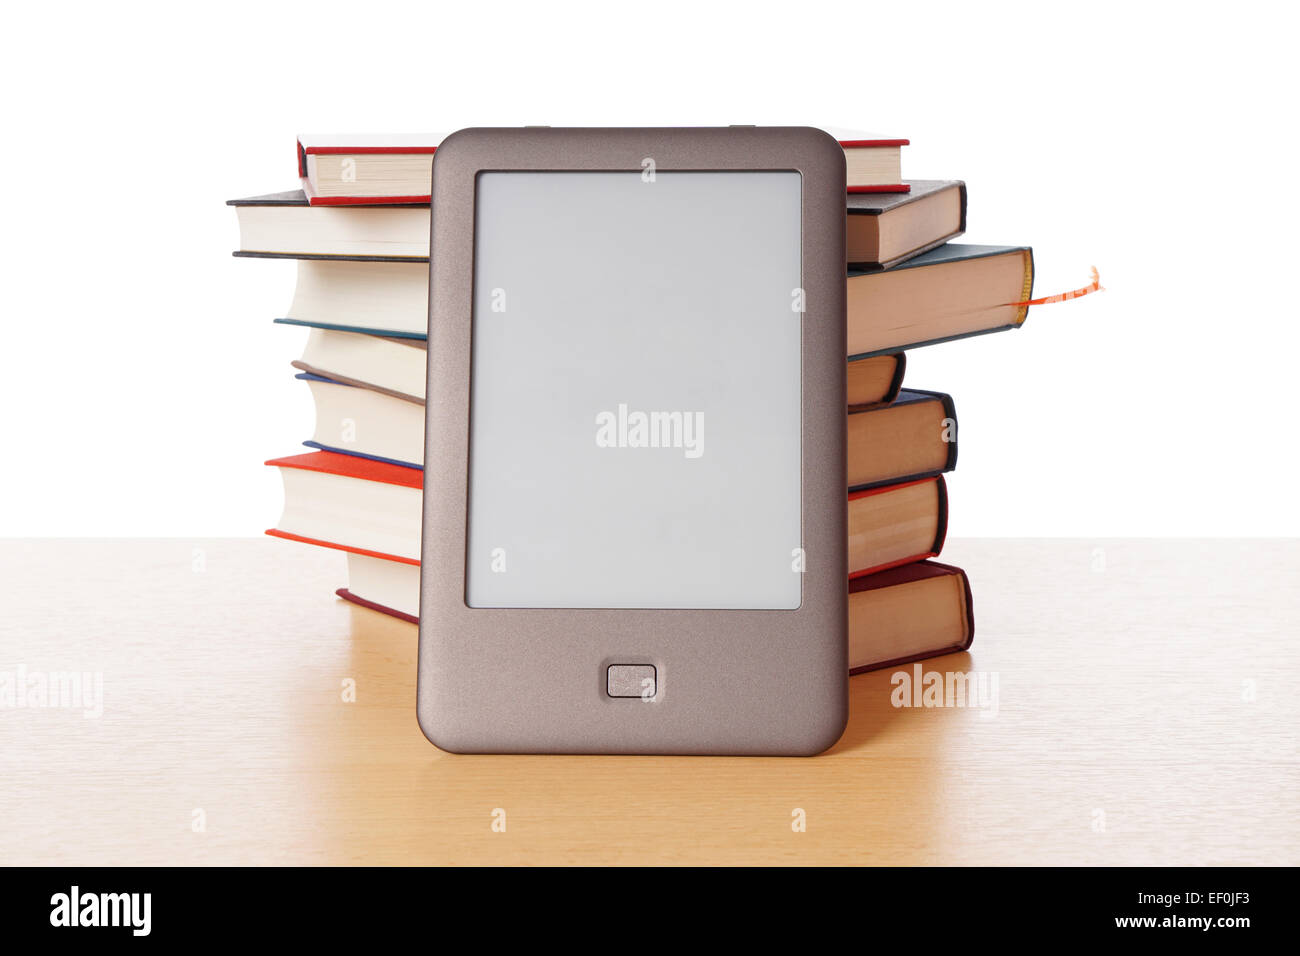 ebook reader vs pile of books - Stock Image